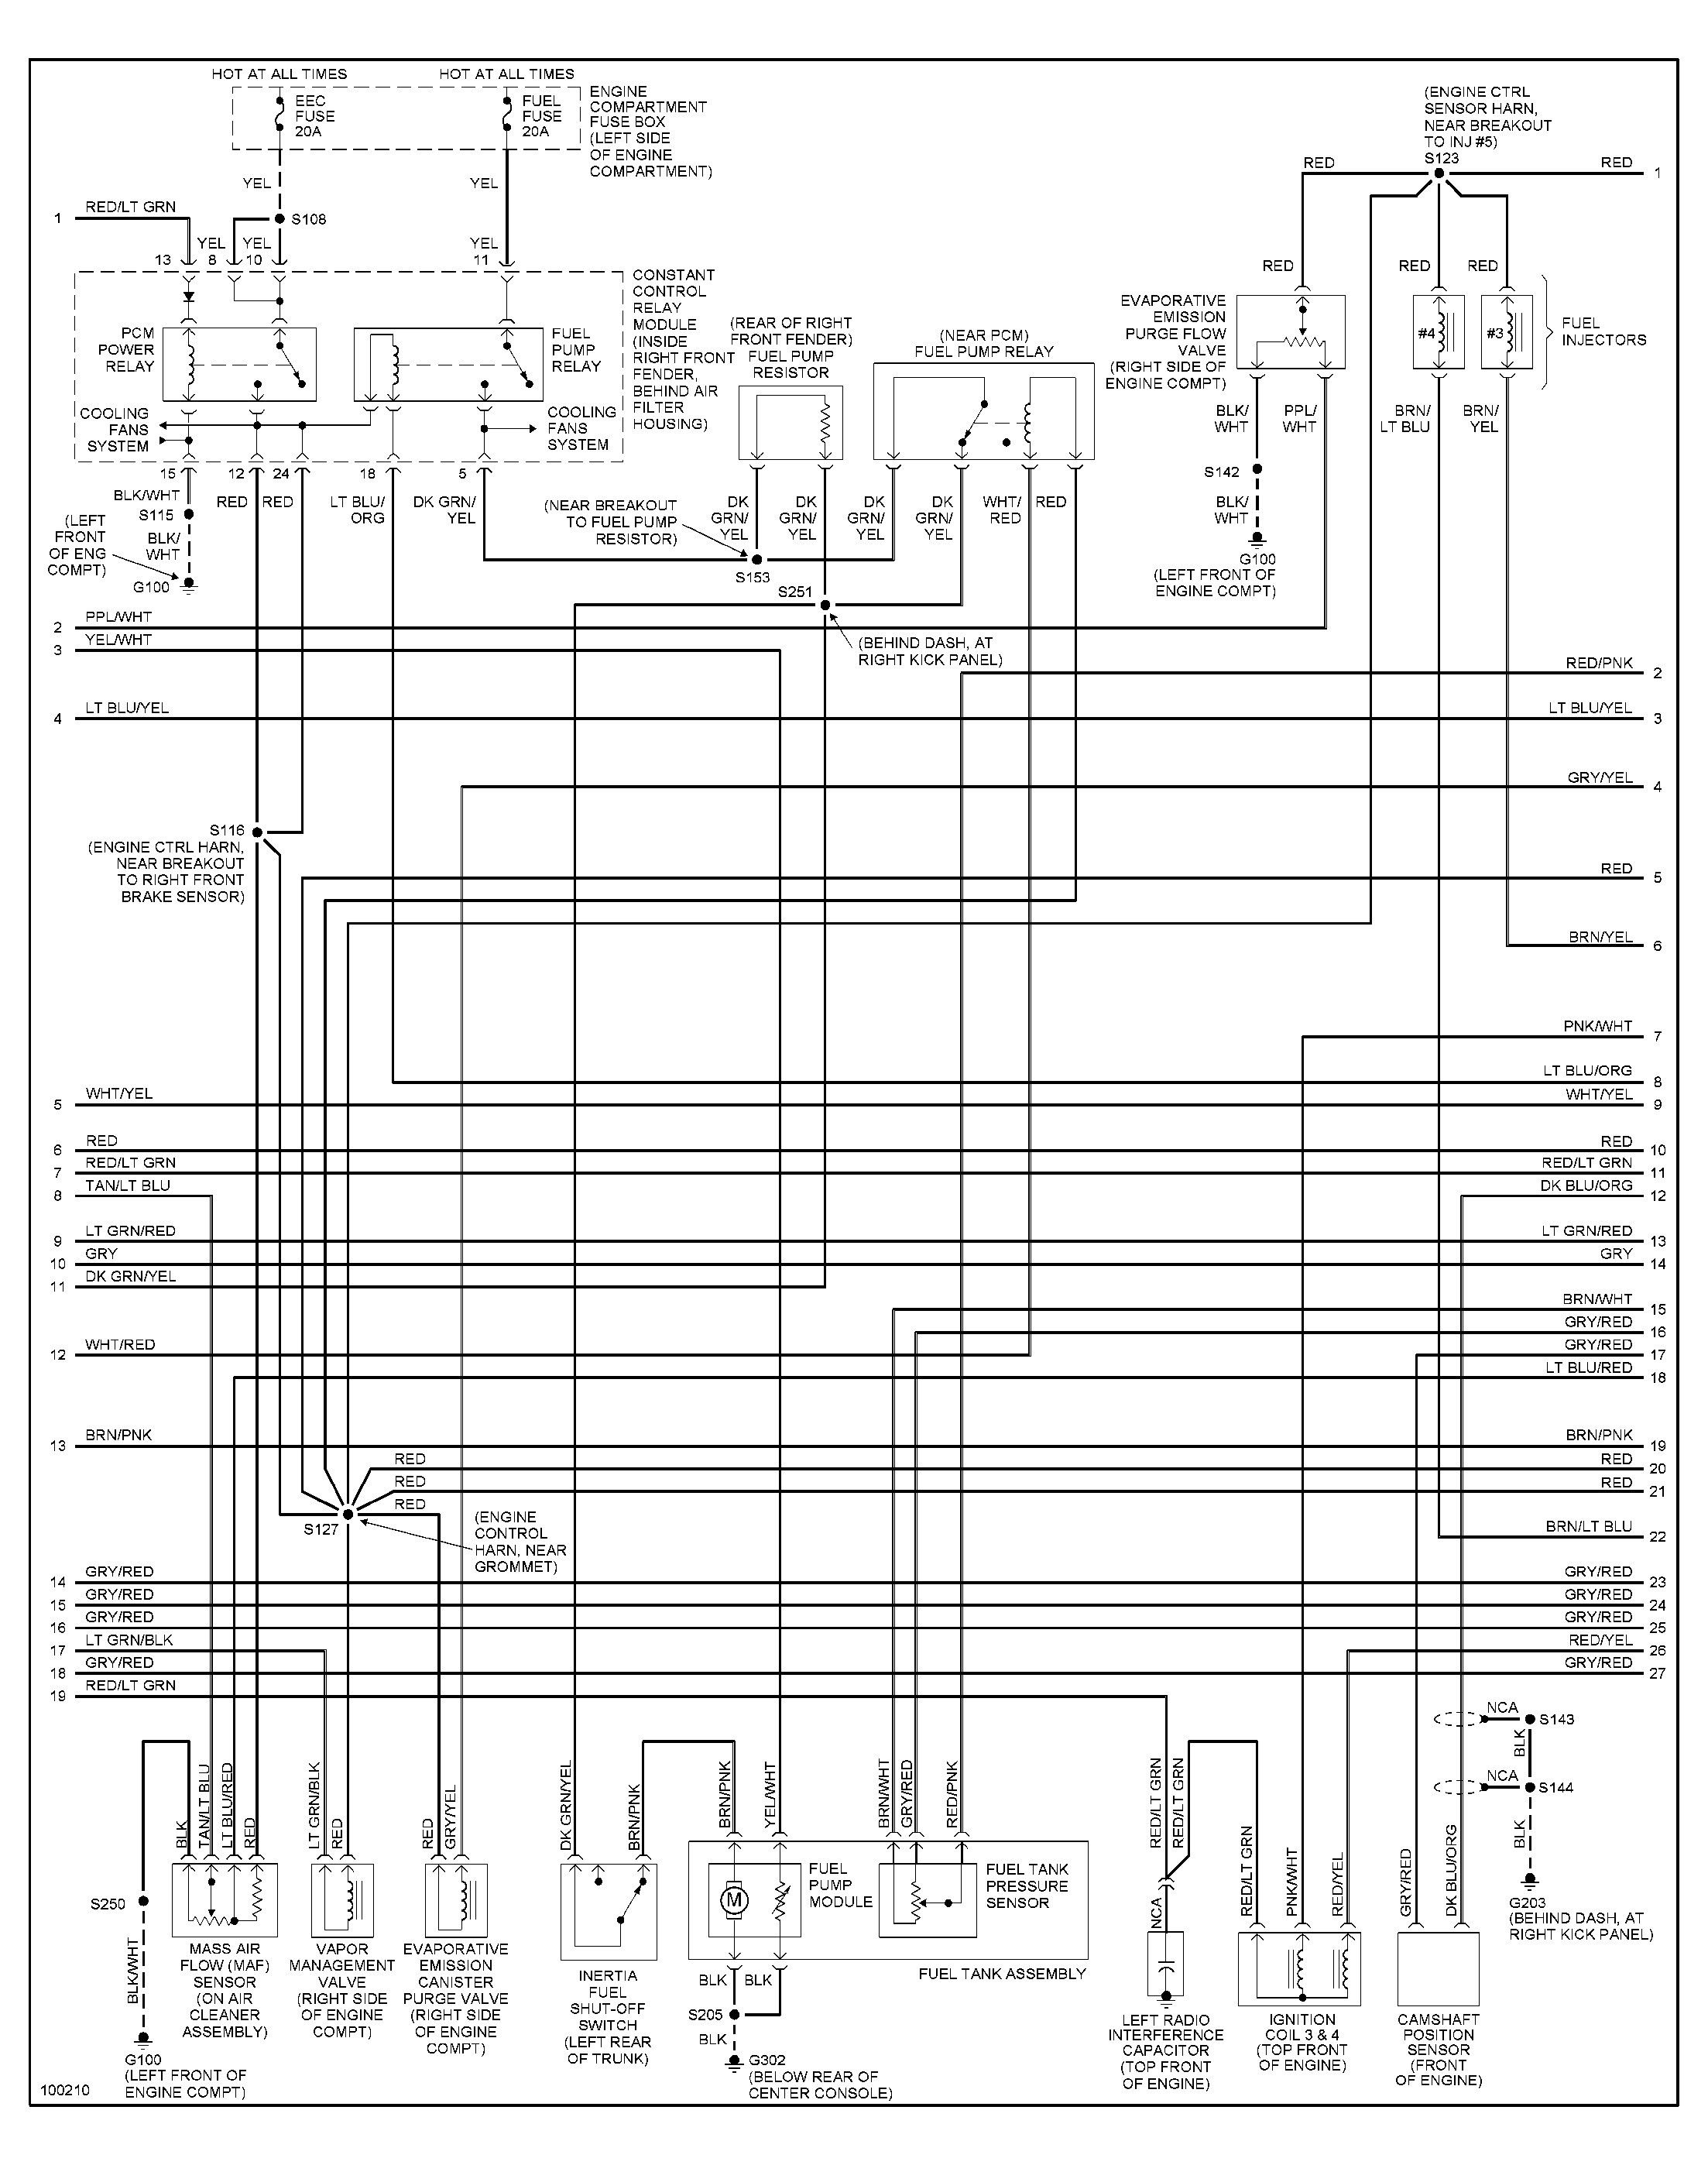 1998 Ford Mustang Engine Diagram Mustang Engine Ford Mustang Ford Focus Engine